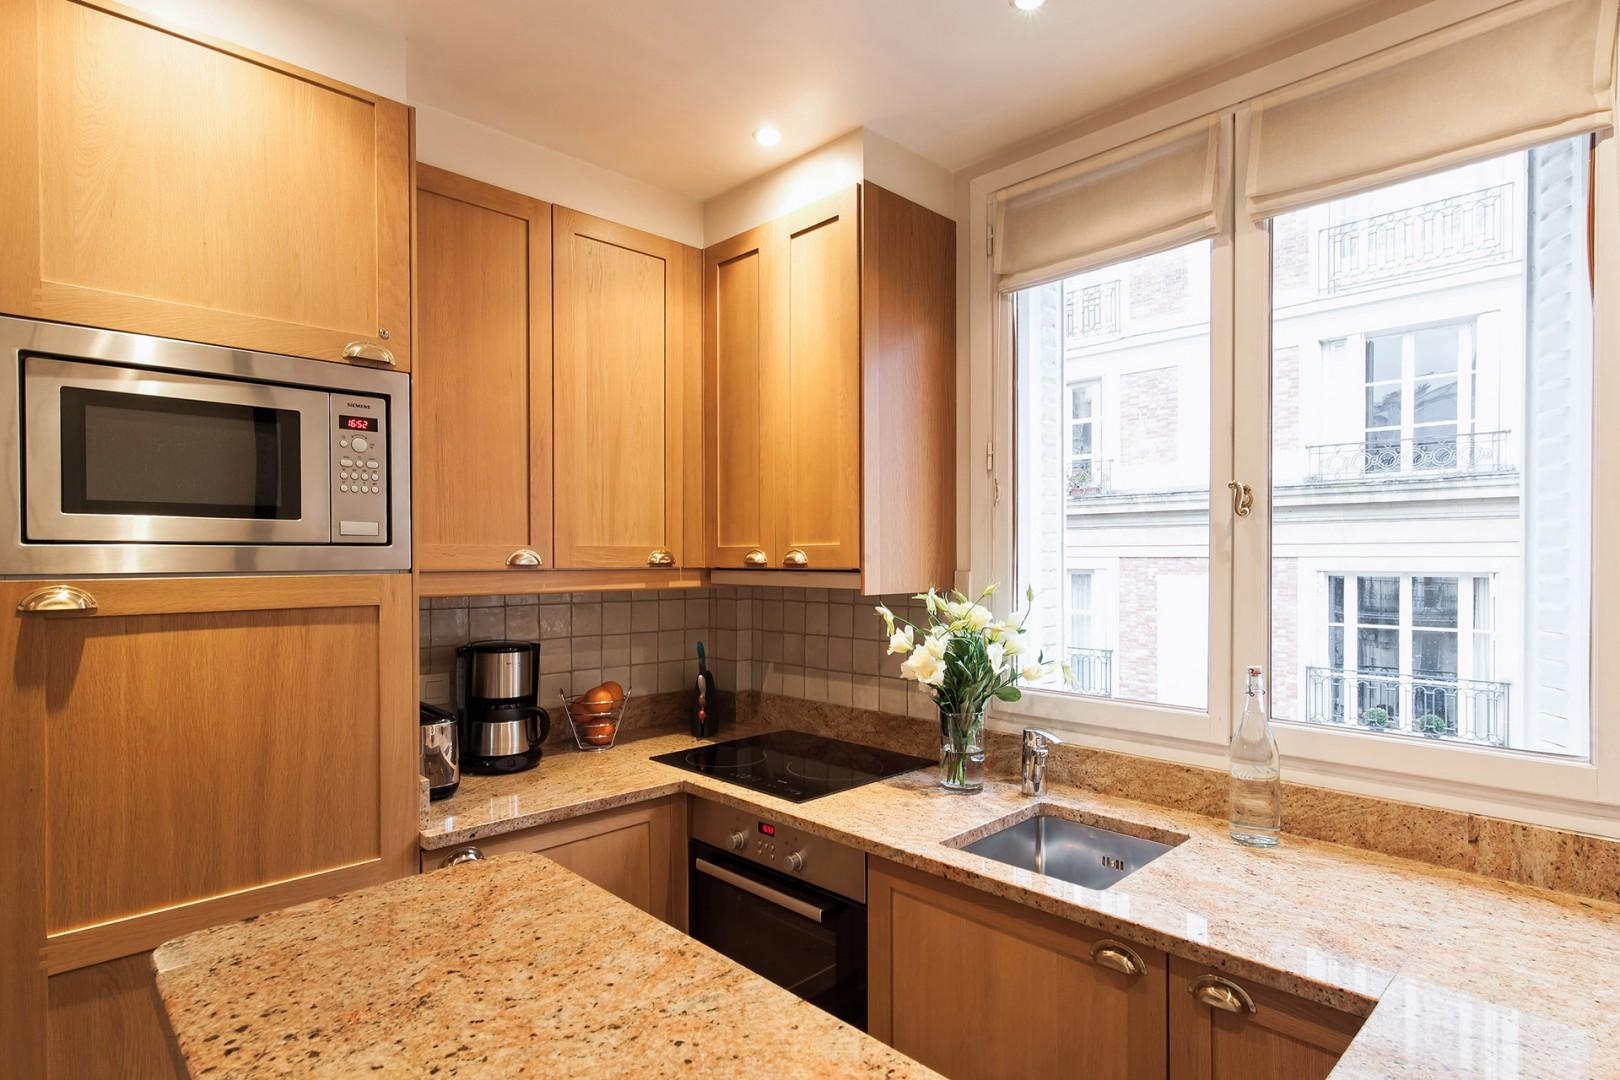 The kitchen is fully-equipped with quality appliances.